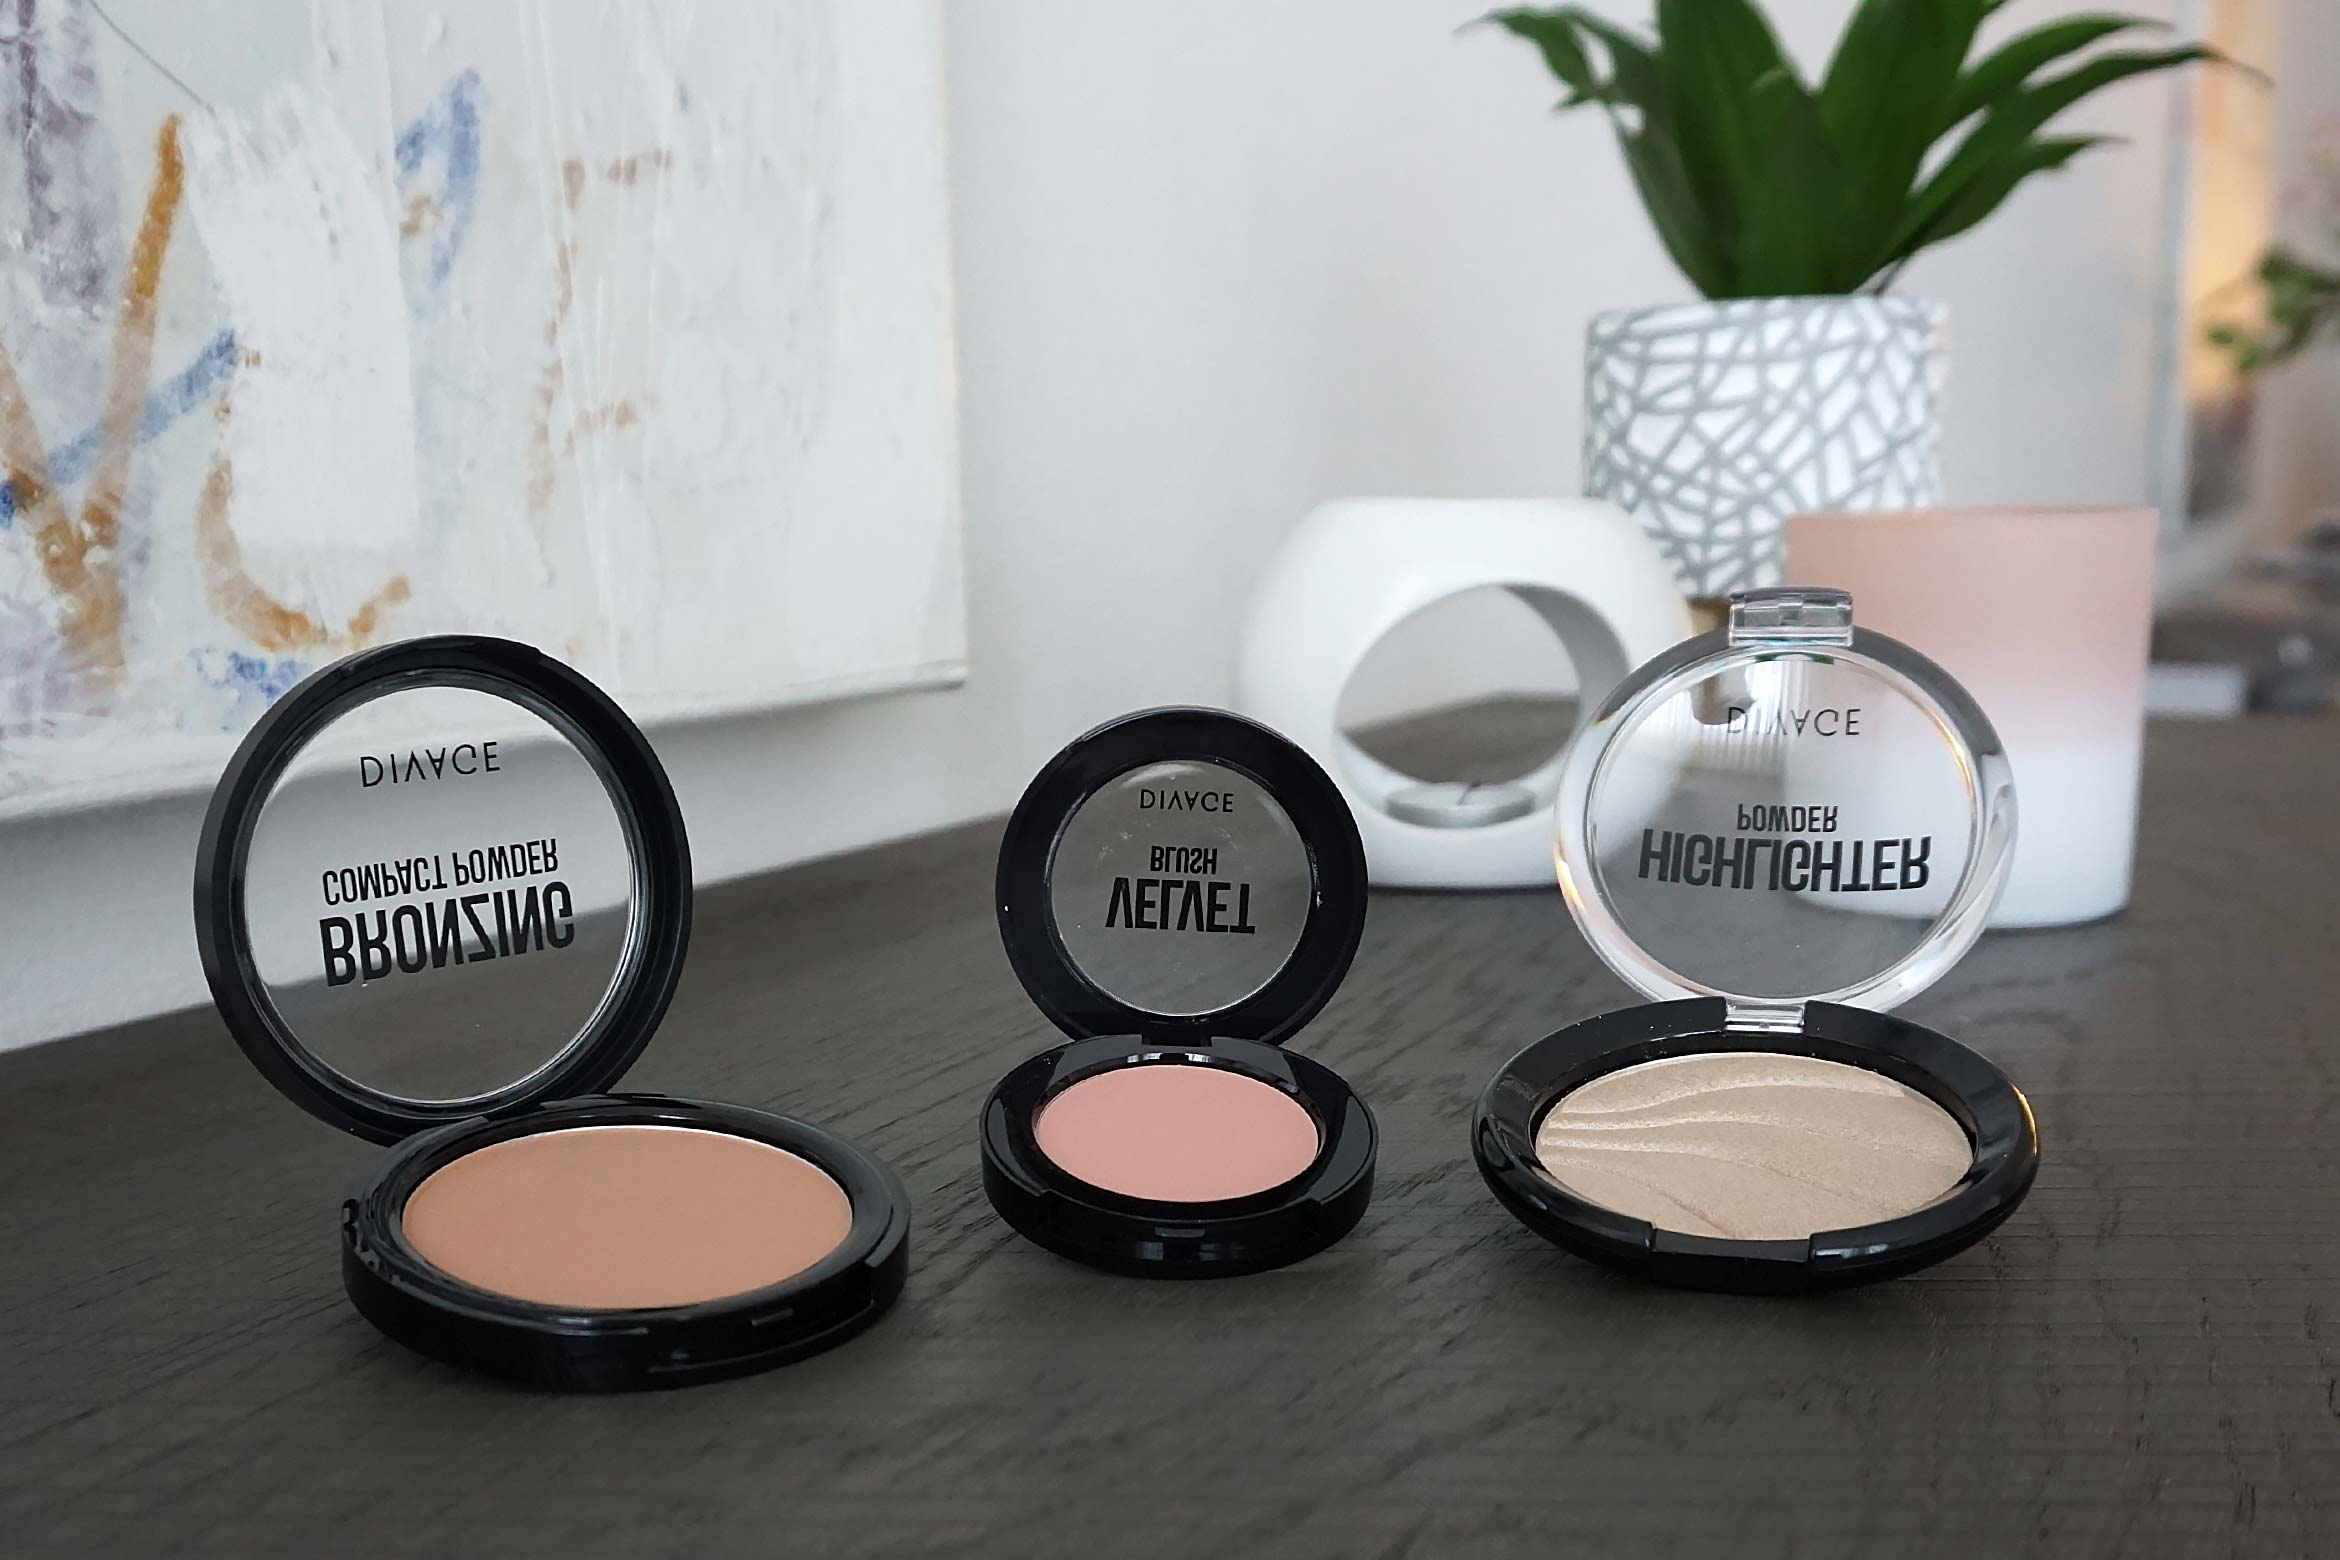 divage blush bronzer highlighter review-1